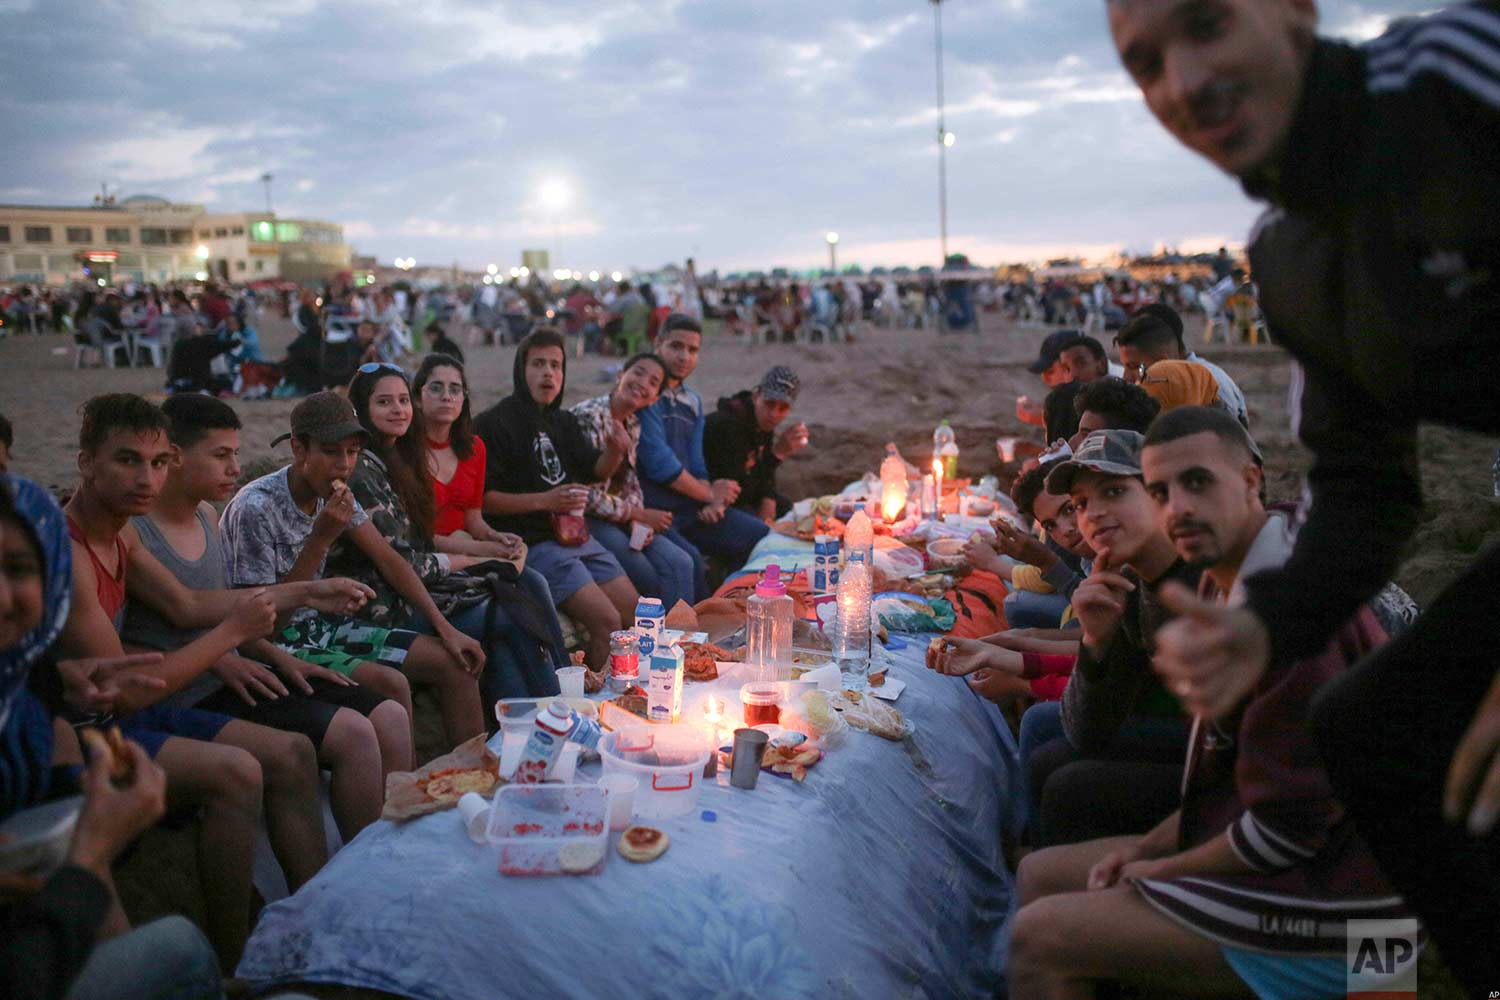 Friends pose for a photo as they prepare to break their fast on the beach, in the holy month of Ramadan, Rabat, Morocco, Saturday, June 9, 2018. (AP Photo/Mosa'ab Elshamy)